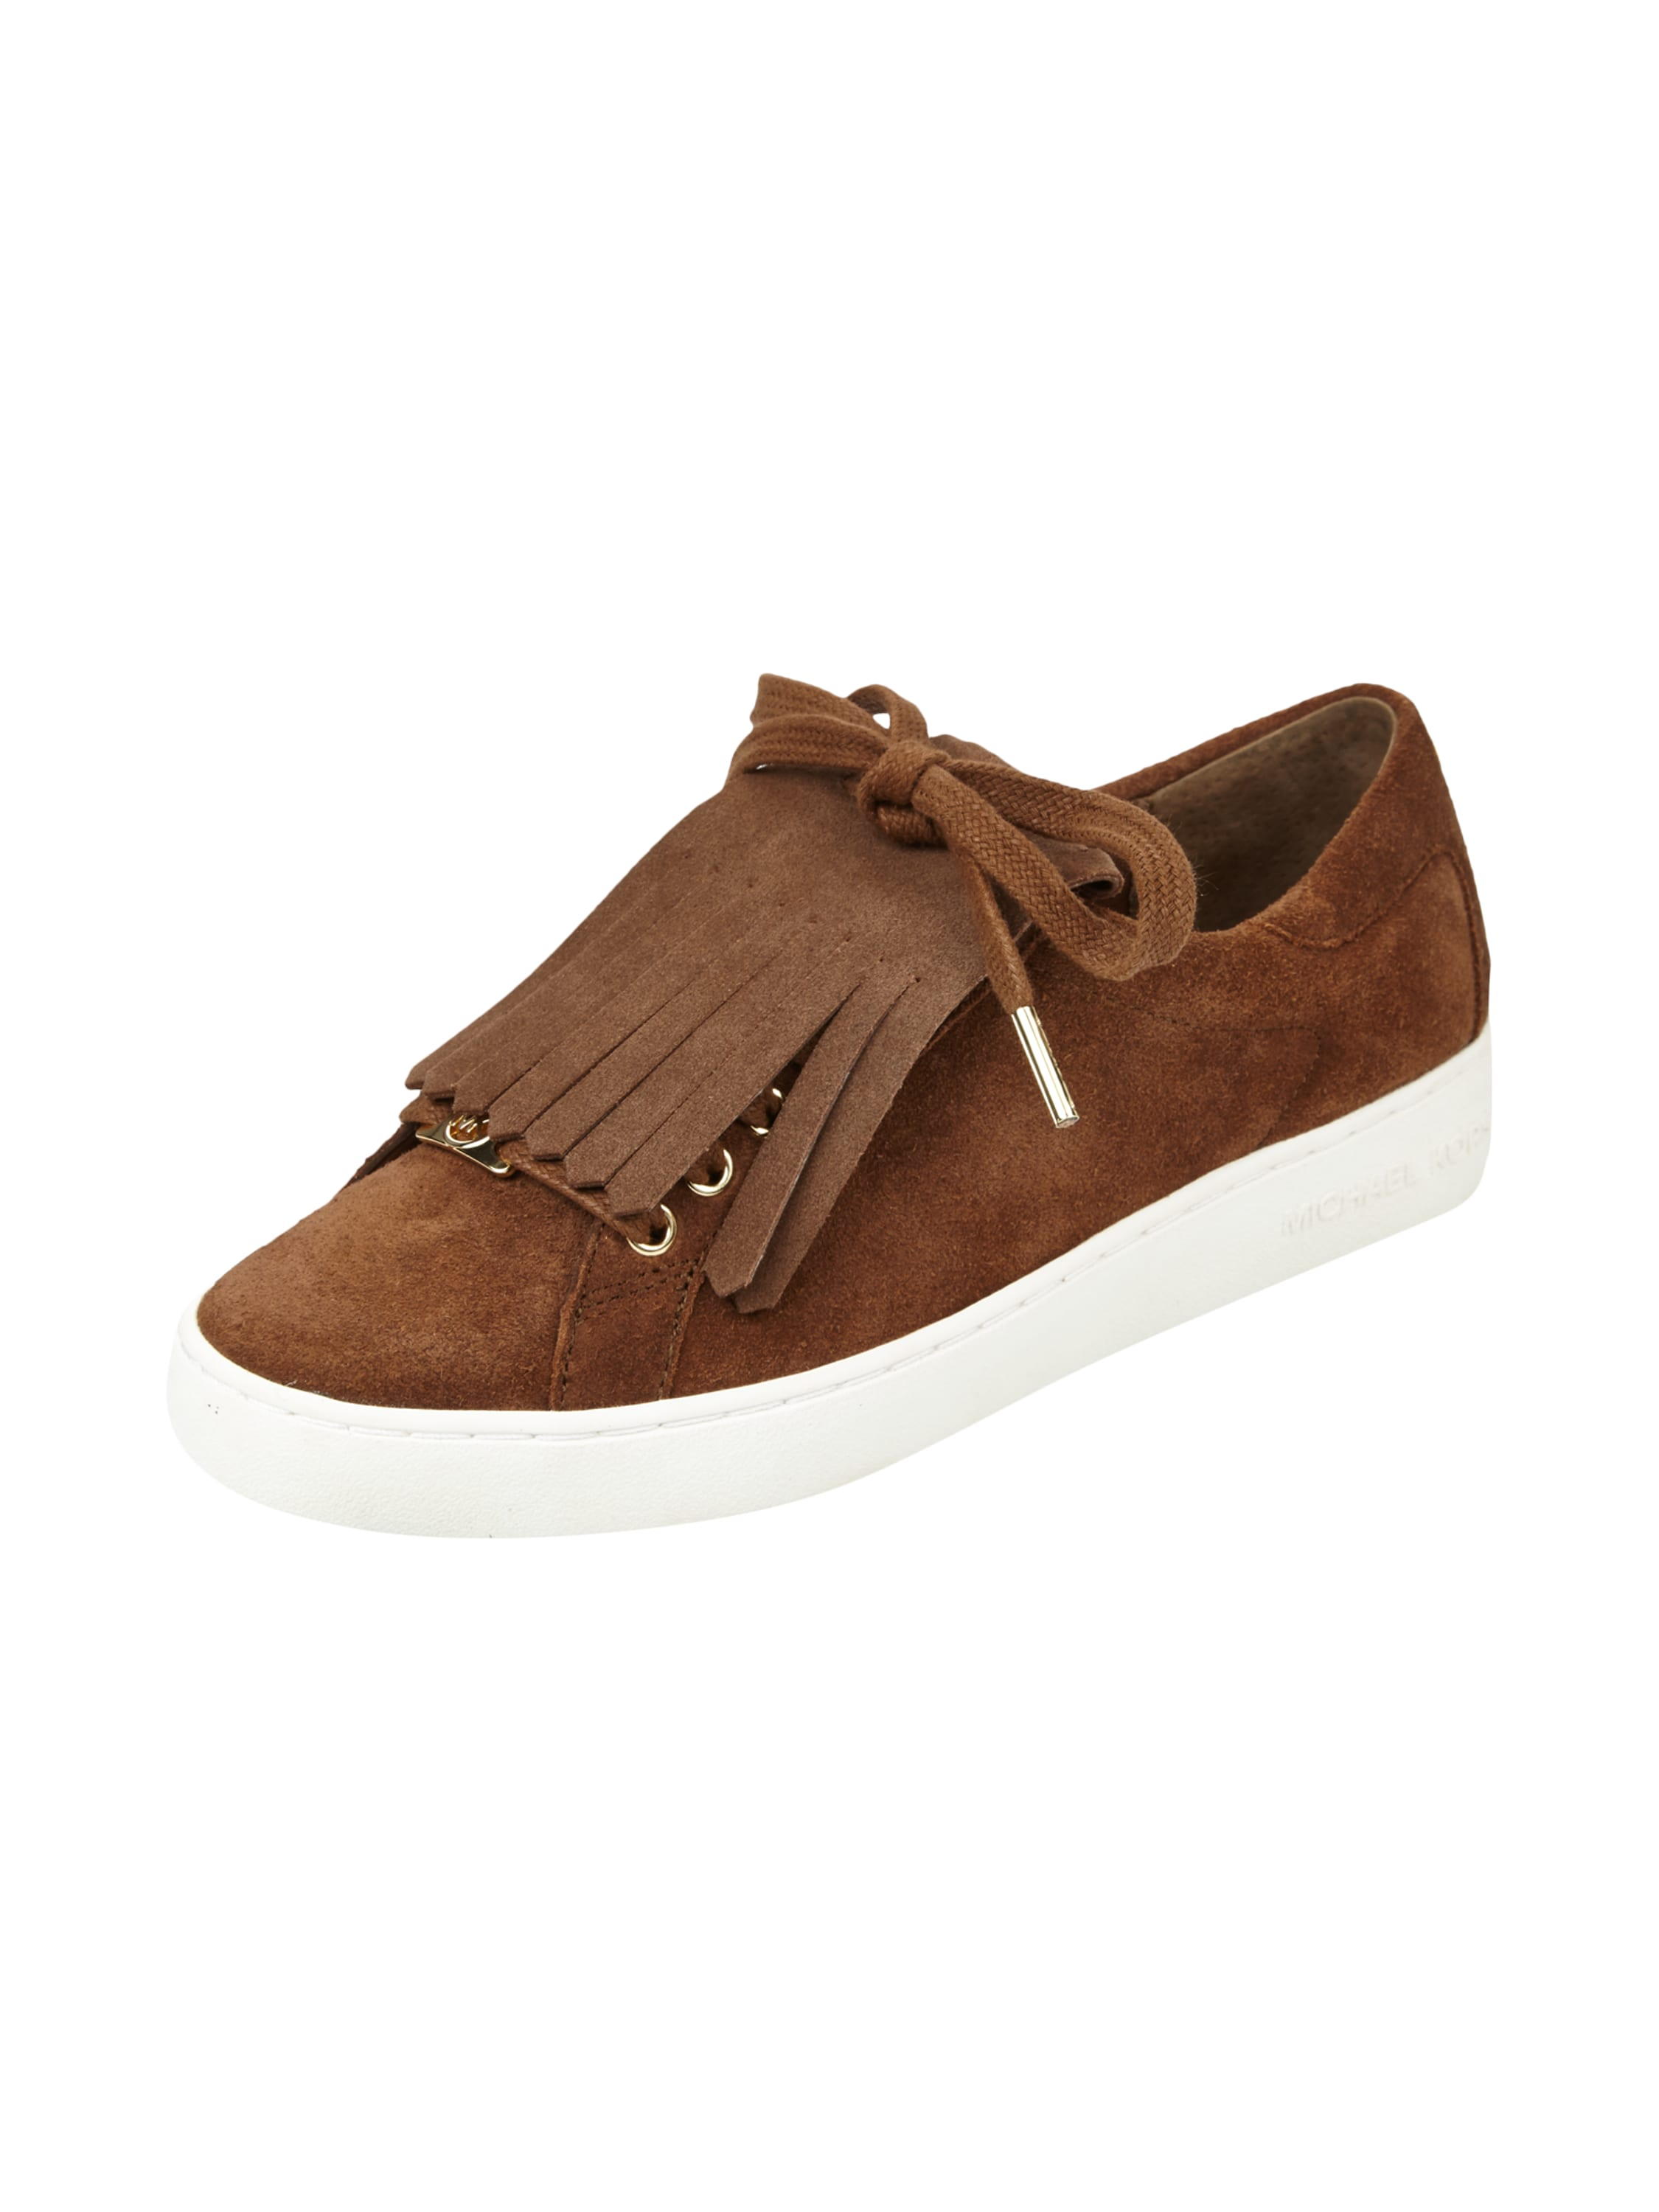 michael michael kors sneaker aus echtem veloursleder in braun online kaufen 9472363 p c at. Black Bedroom Furniture Sets. Home Design Ideas